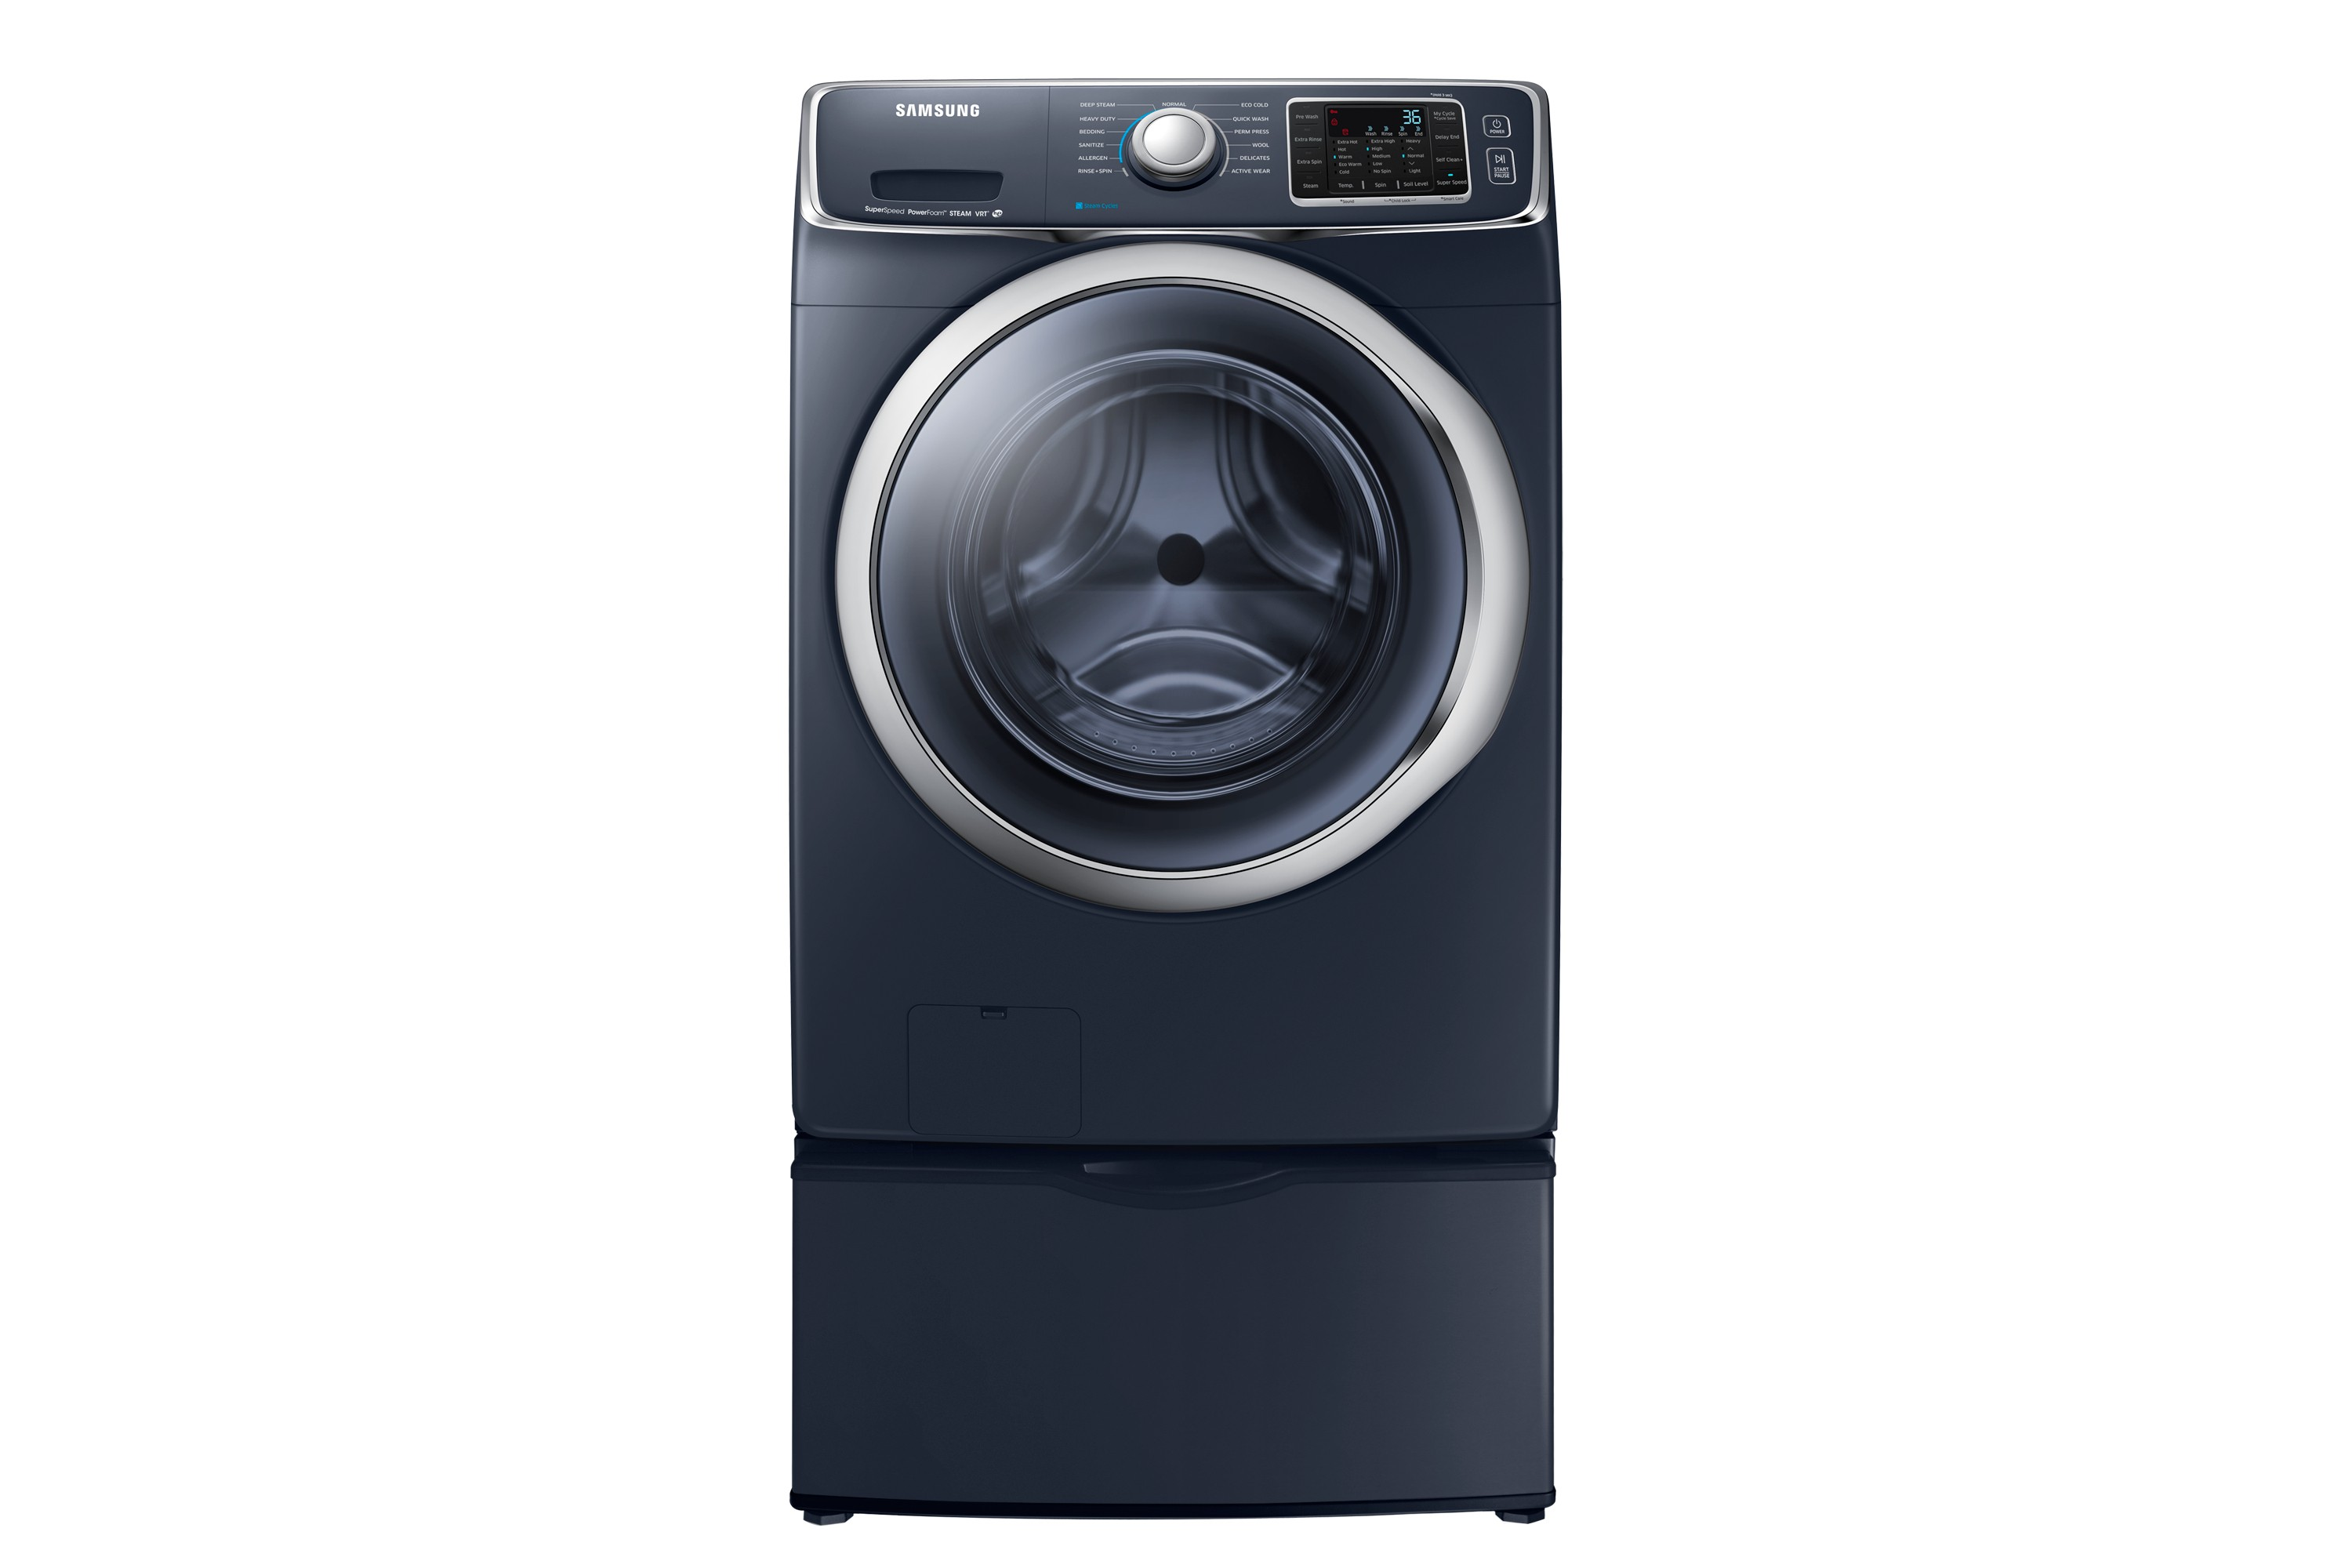 Washer And Dryer Calgary Wf42h5700ag Samsung Washer Canada Best Price Reviews And Specs